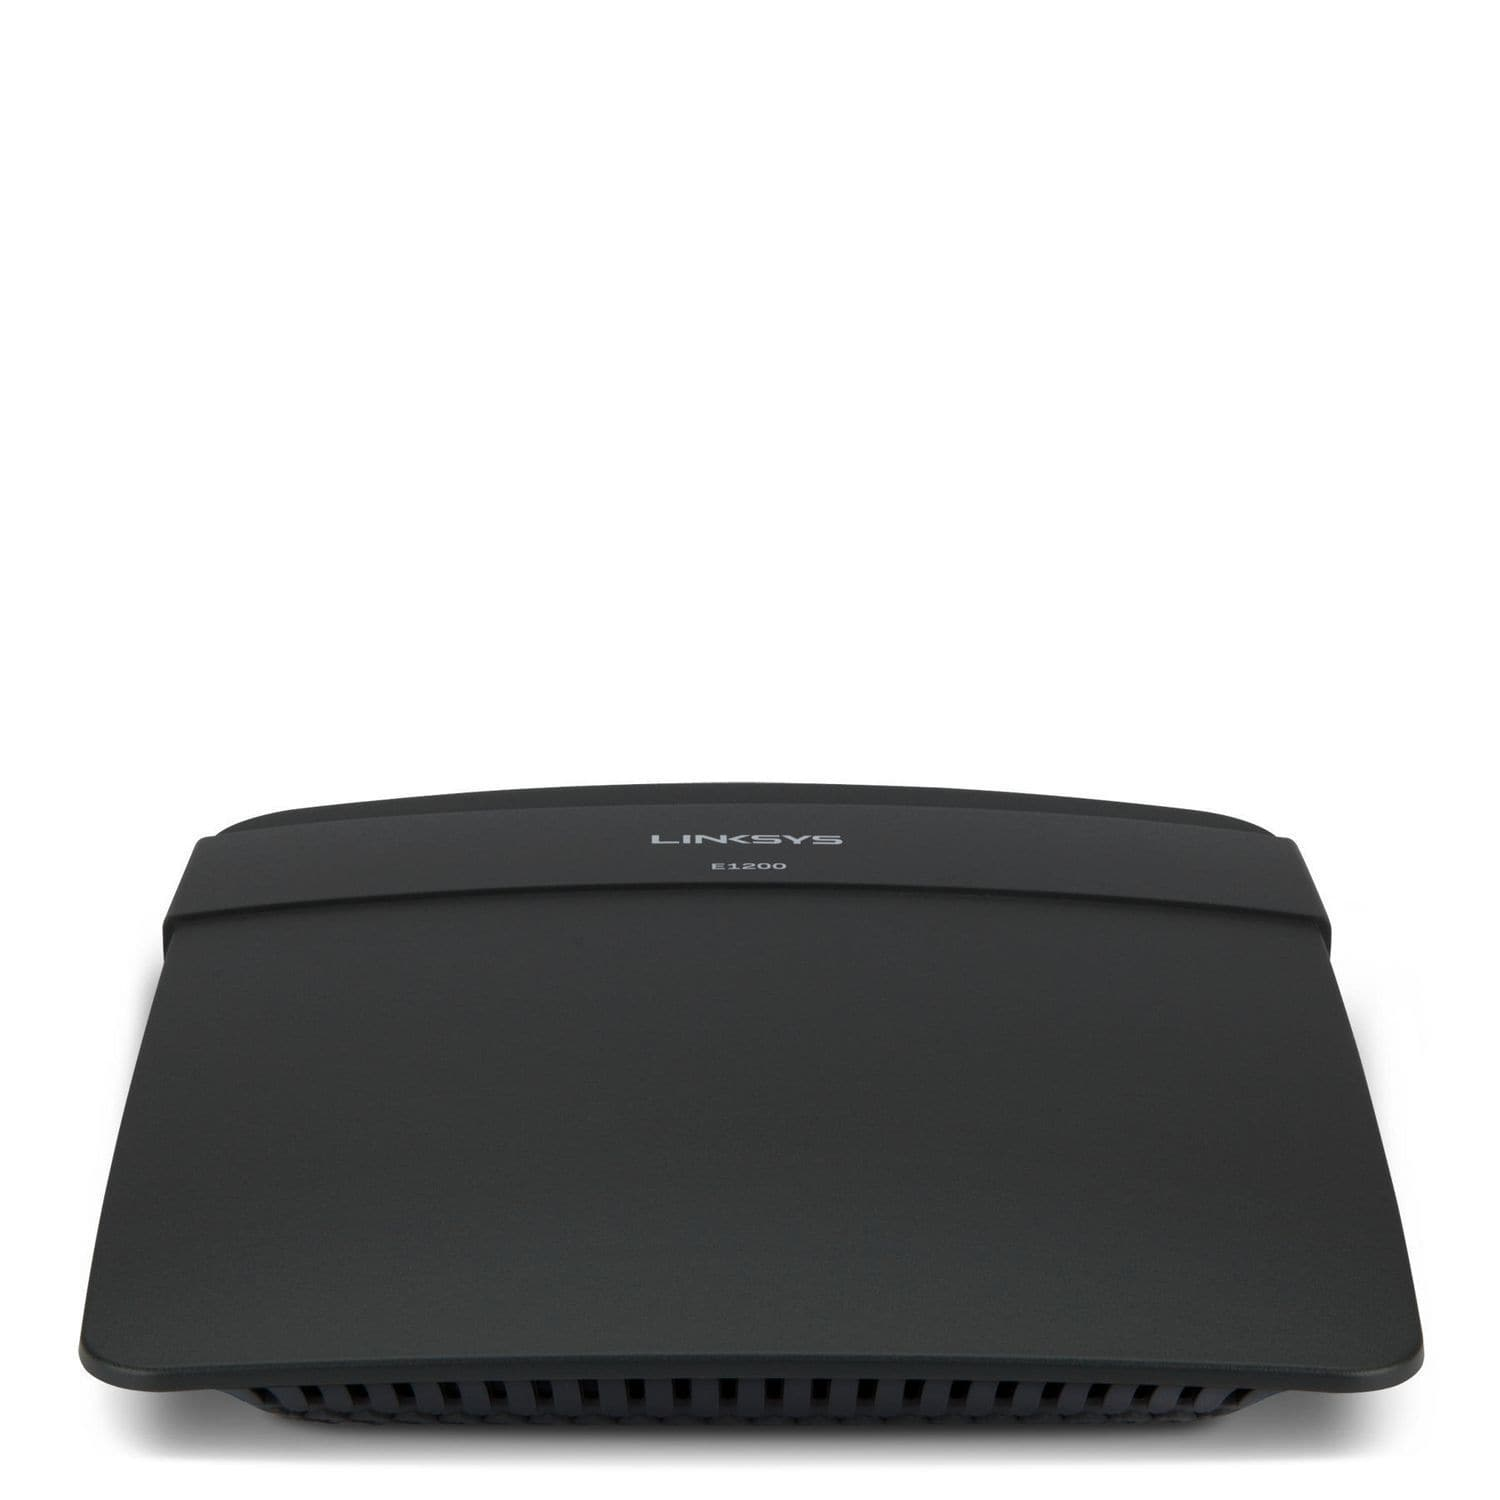 Linksys E1200 N300 Wi-Fi Router